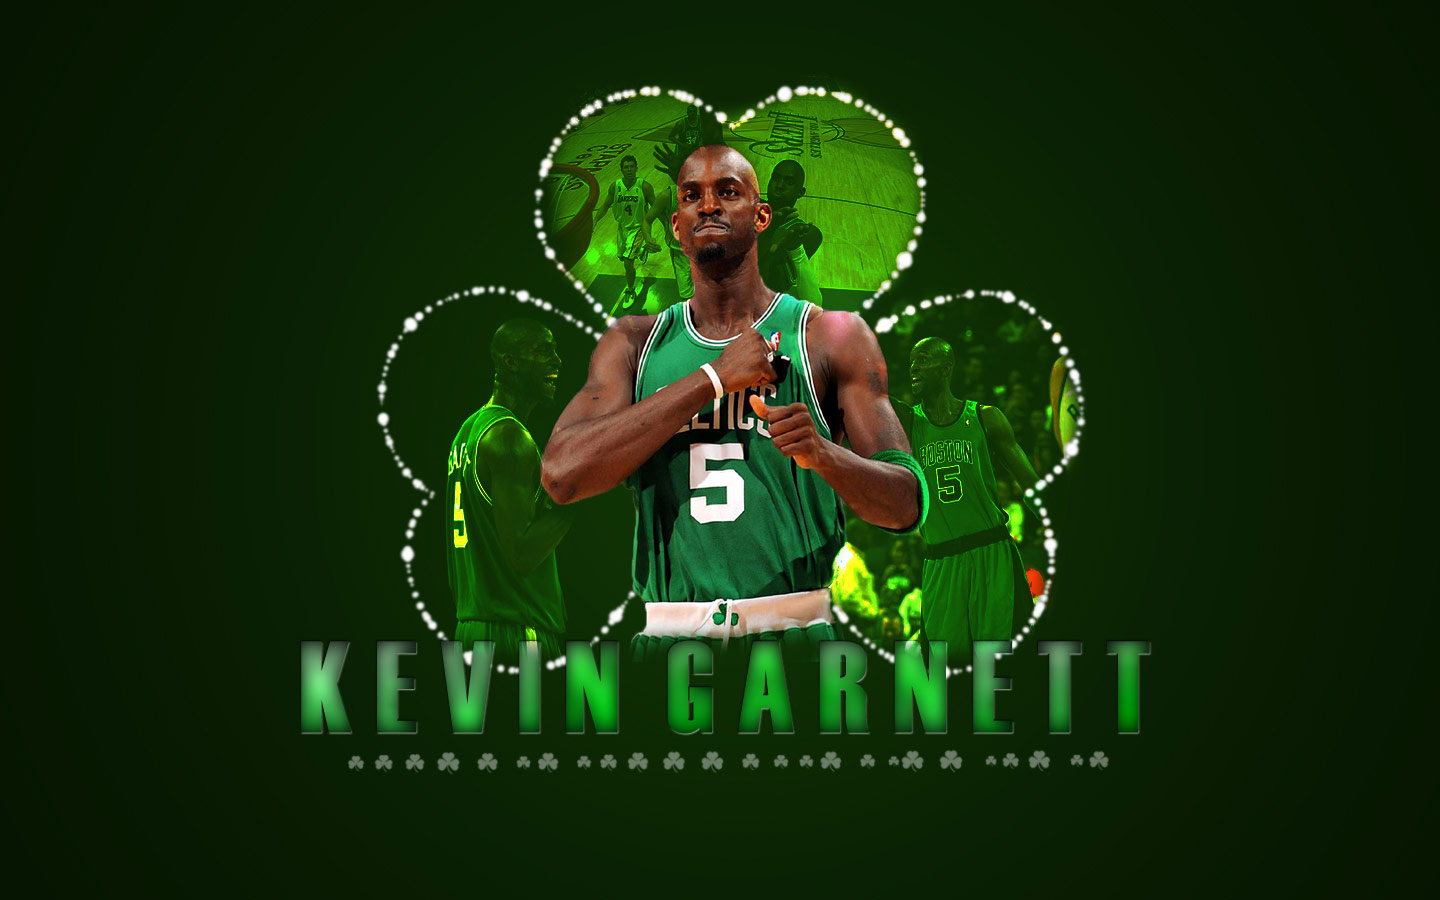 Kevin Garnett Wallpapers | NBA Wallpapers, Basket Ball Wallpapers